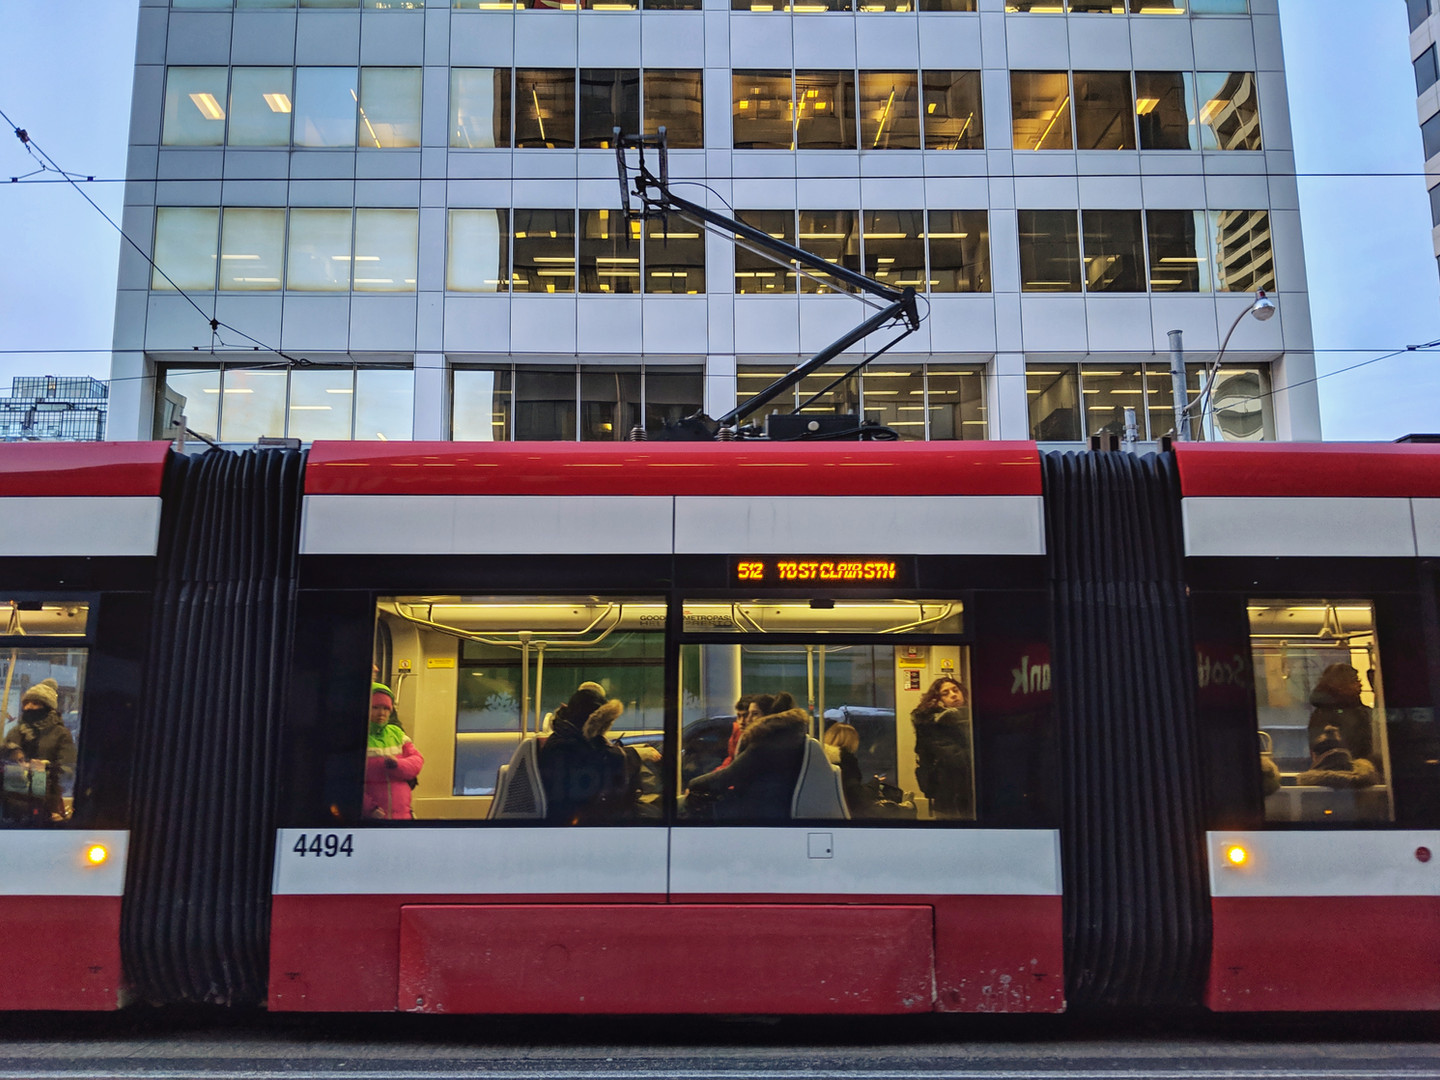 Office buildings on north side of St. Clair Avenue with streetcar